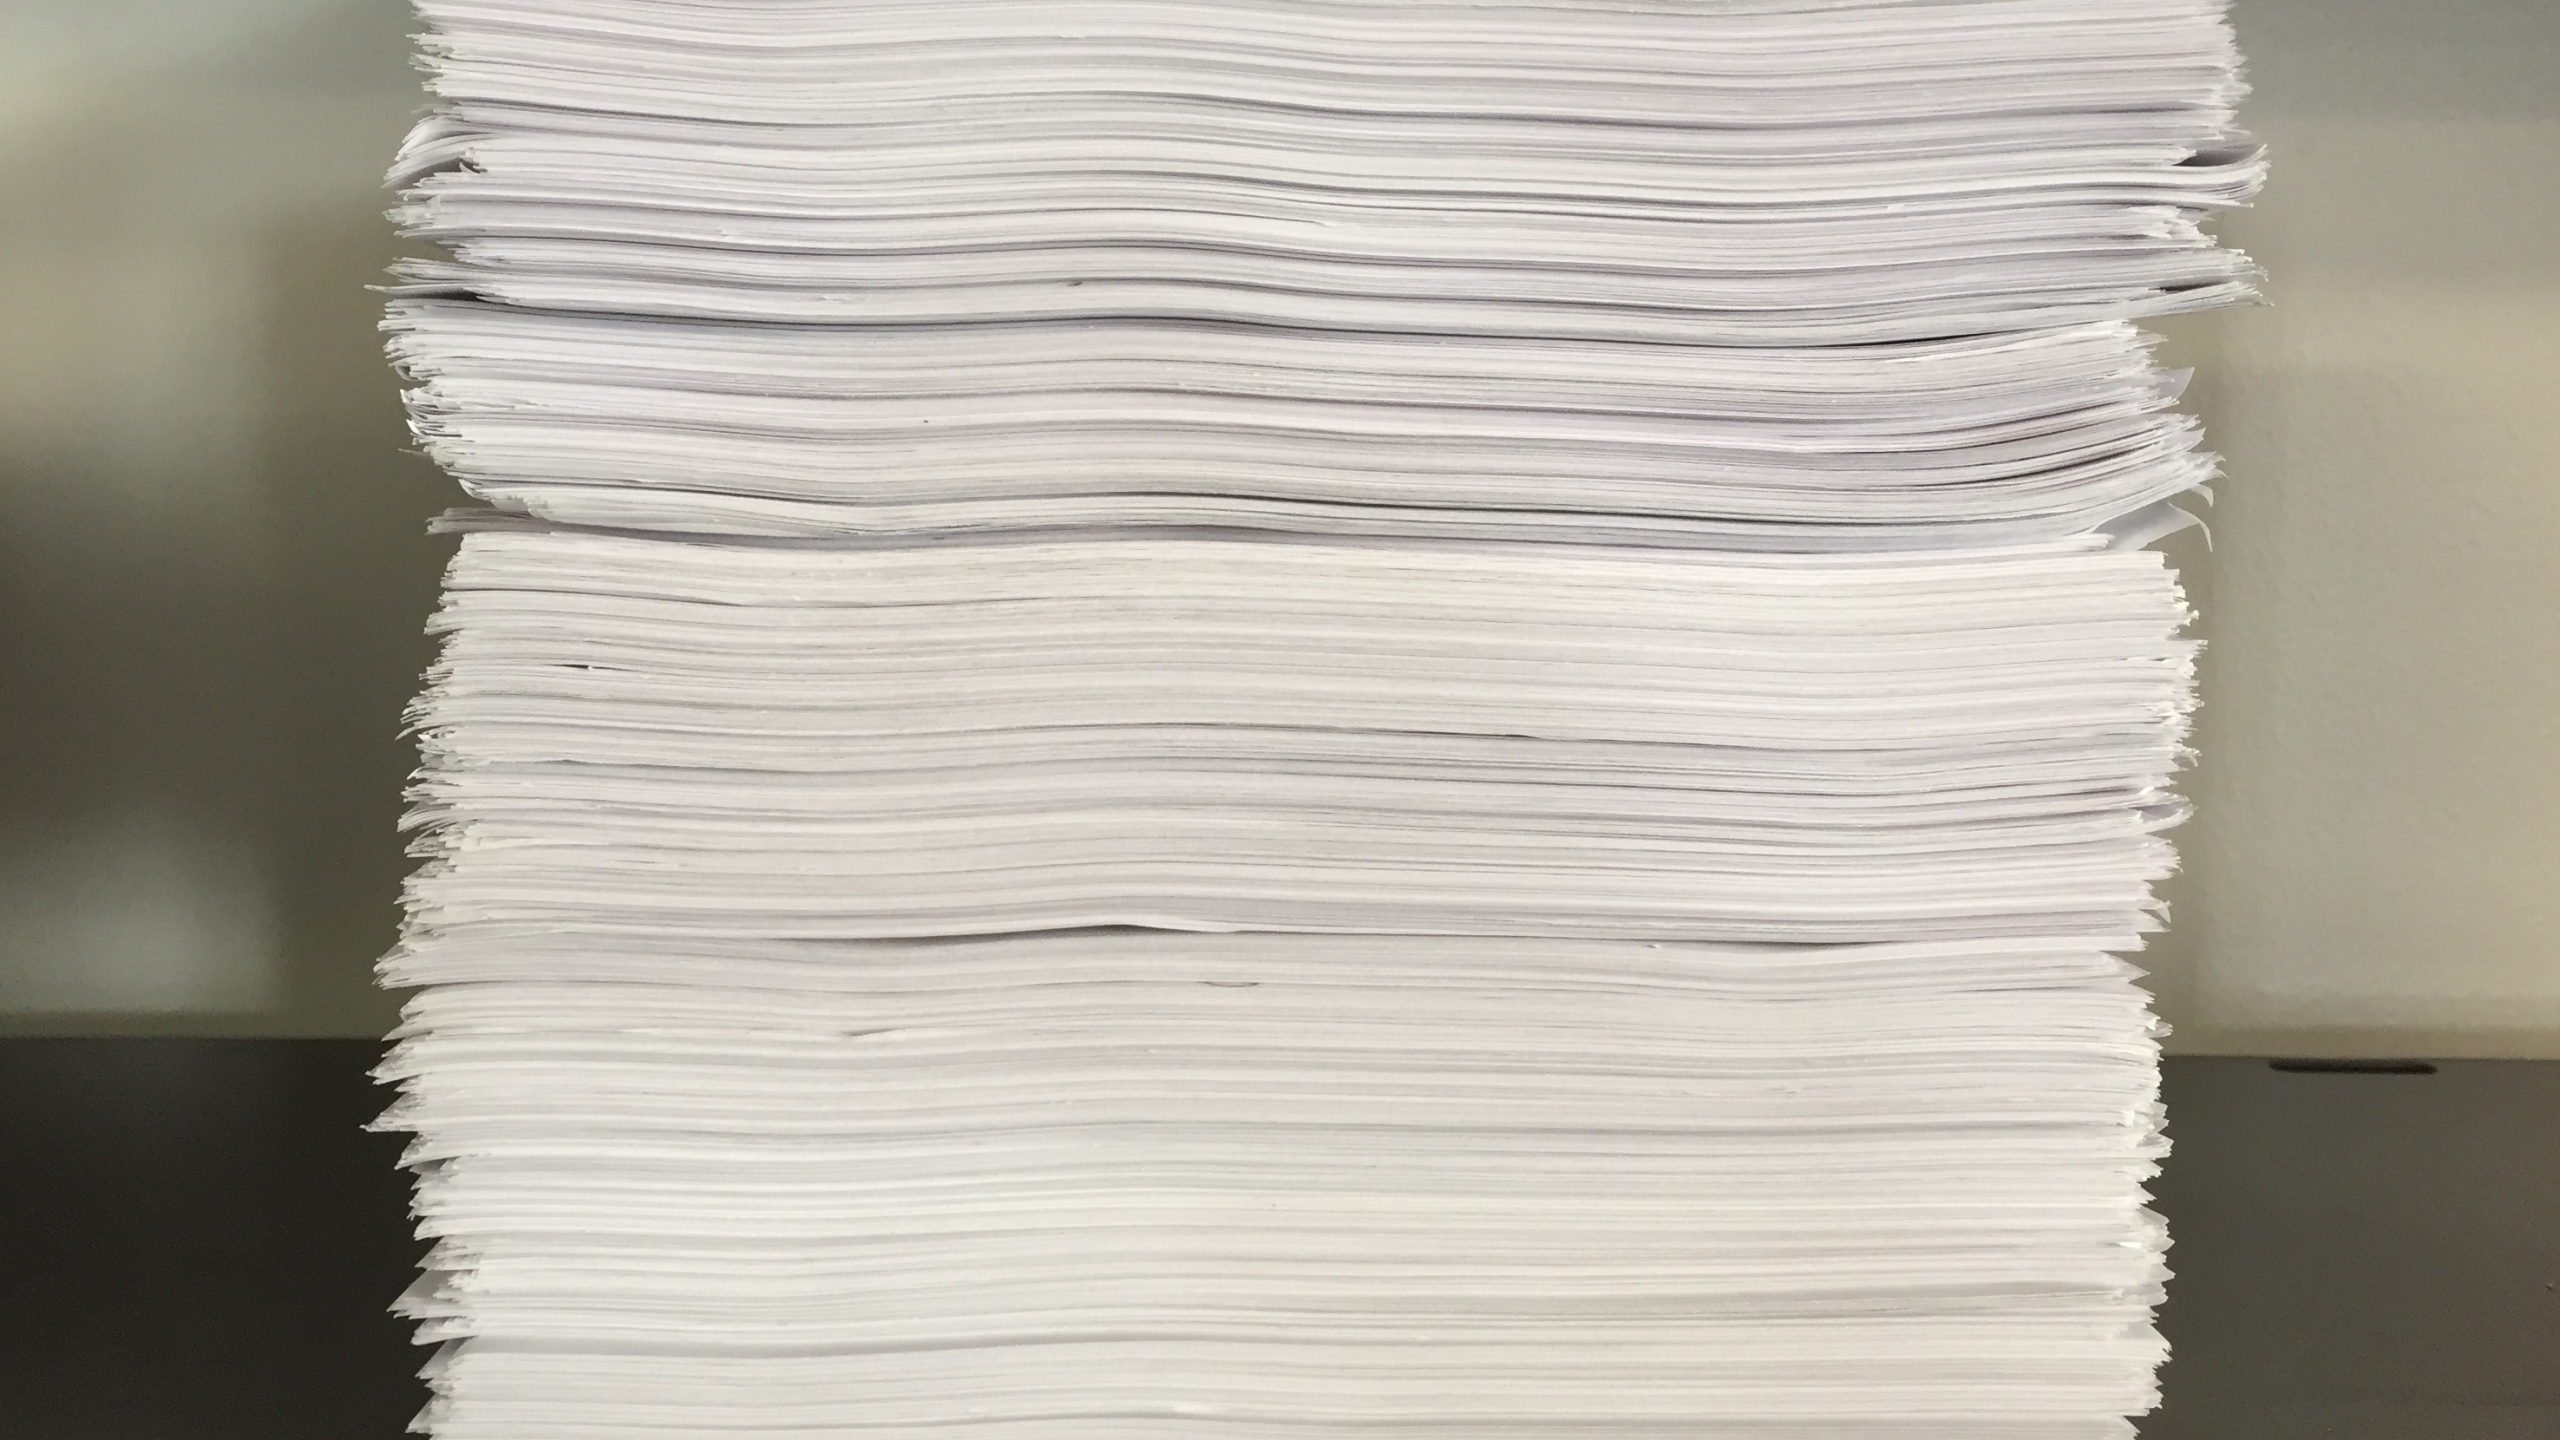 paper stack 3_228296